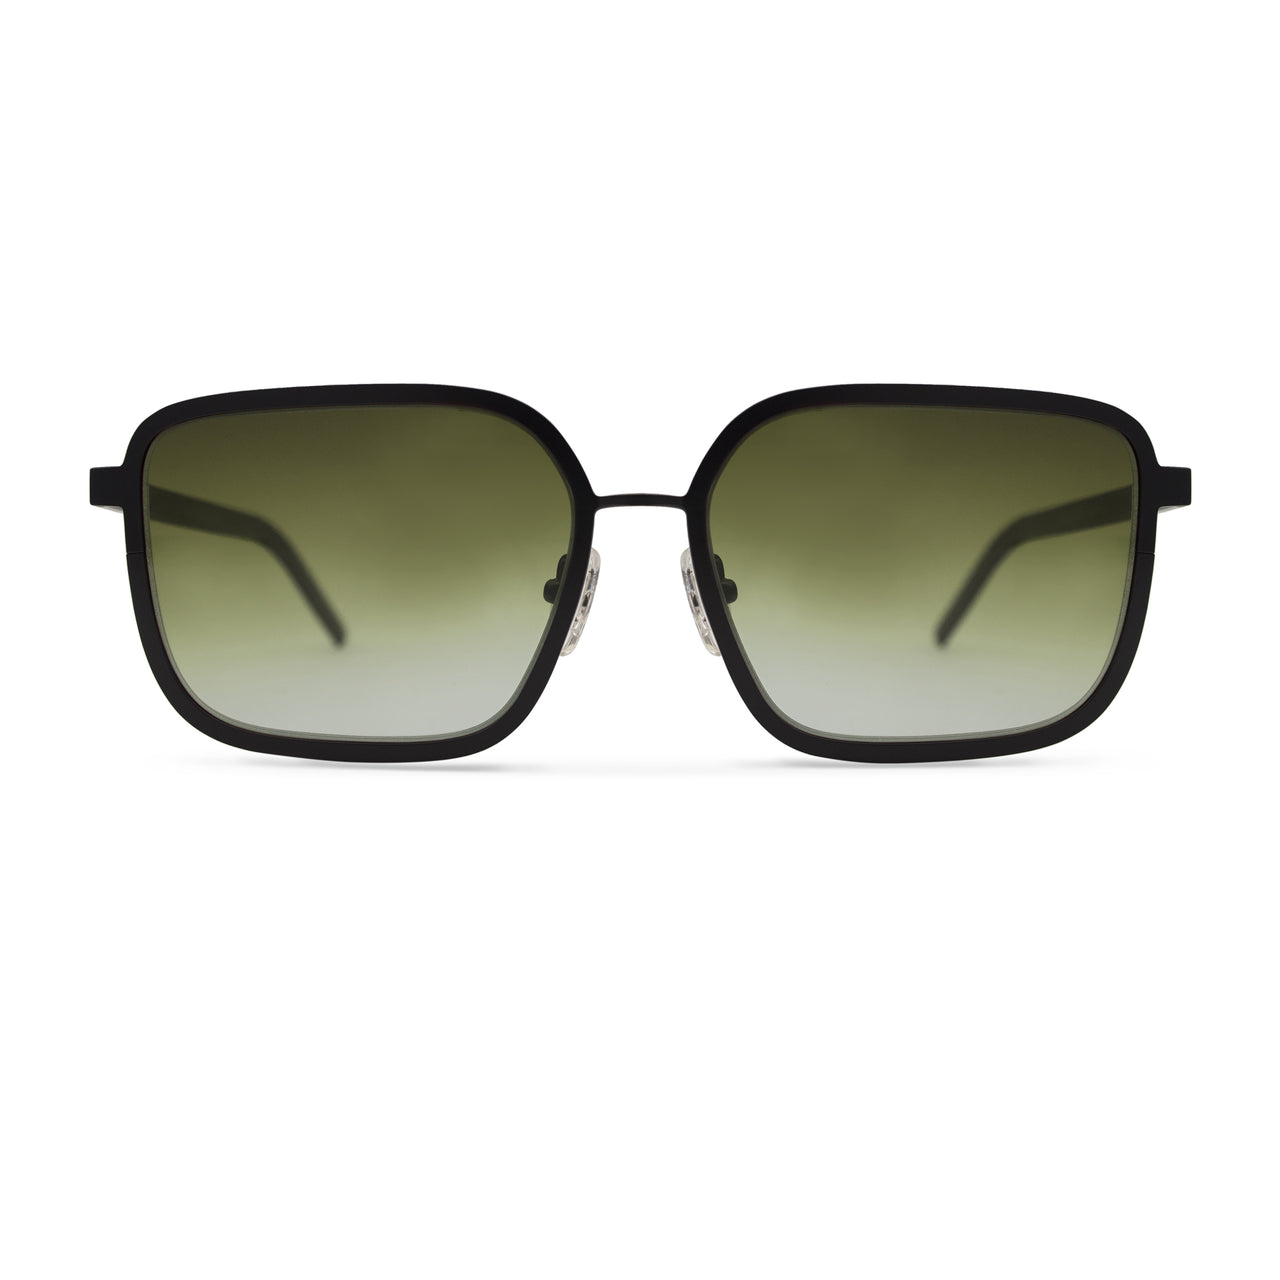 Metal. Gloss Black. Olive Lens. - BLYSZAK eyewear eyewear - eyewear, optical, sunglasses